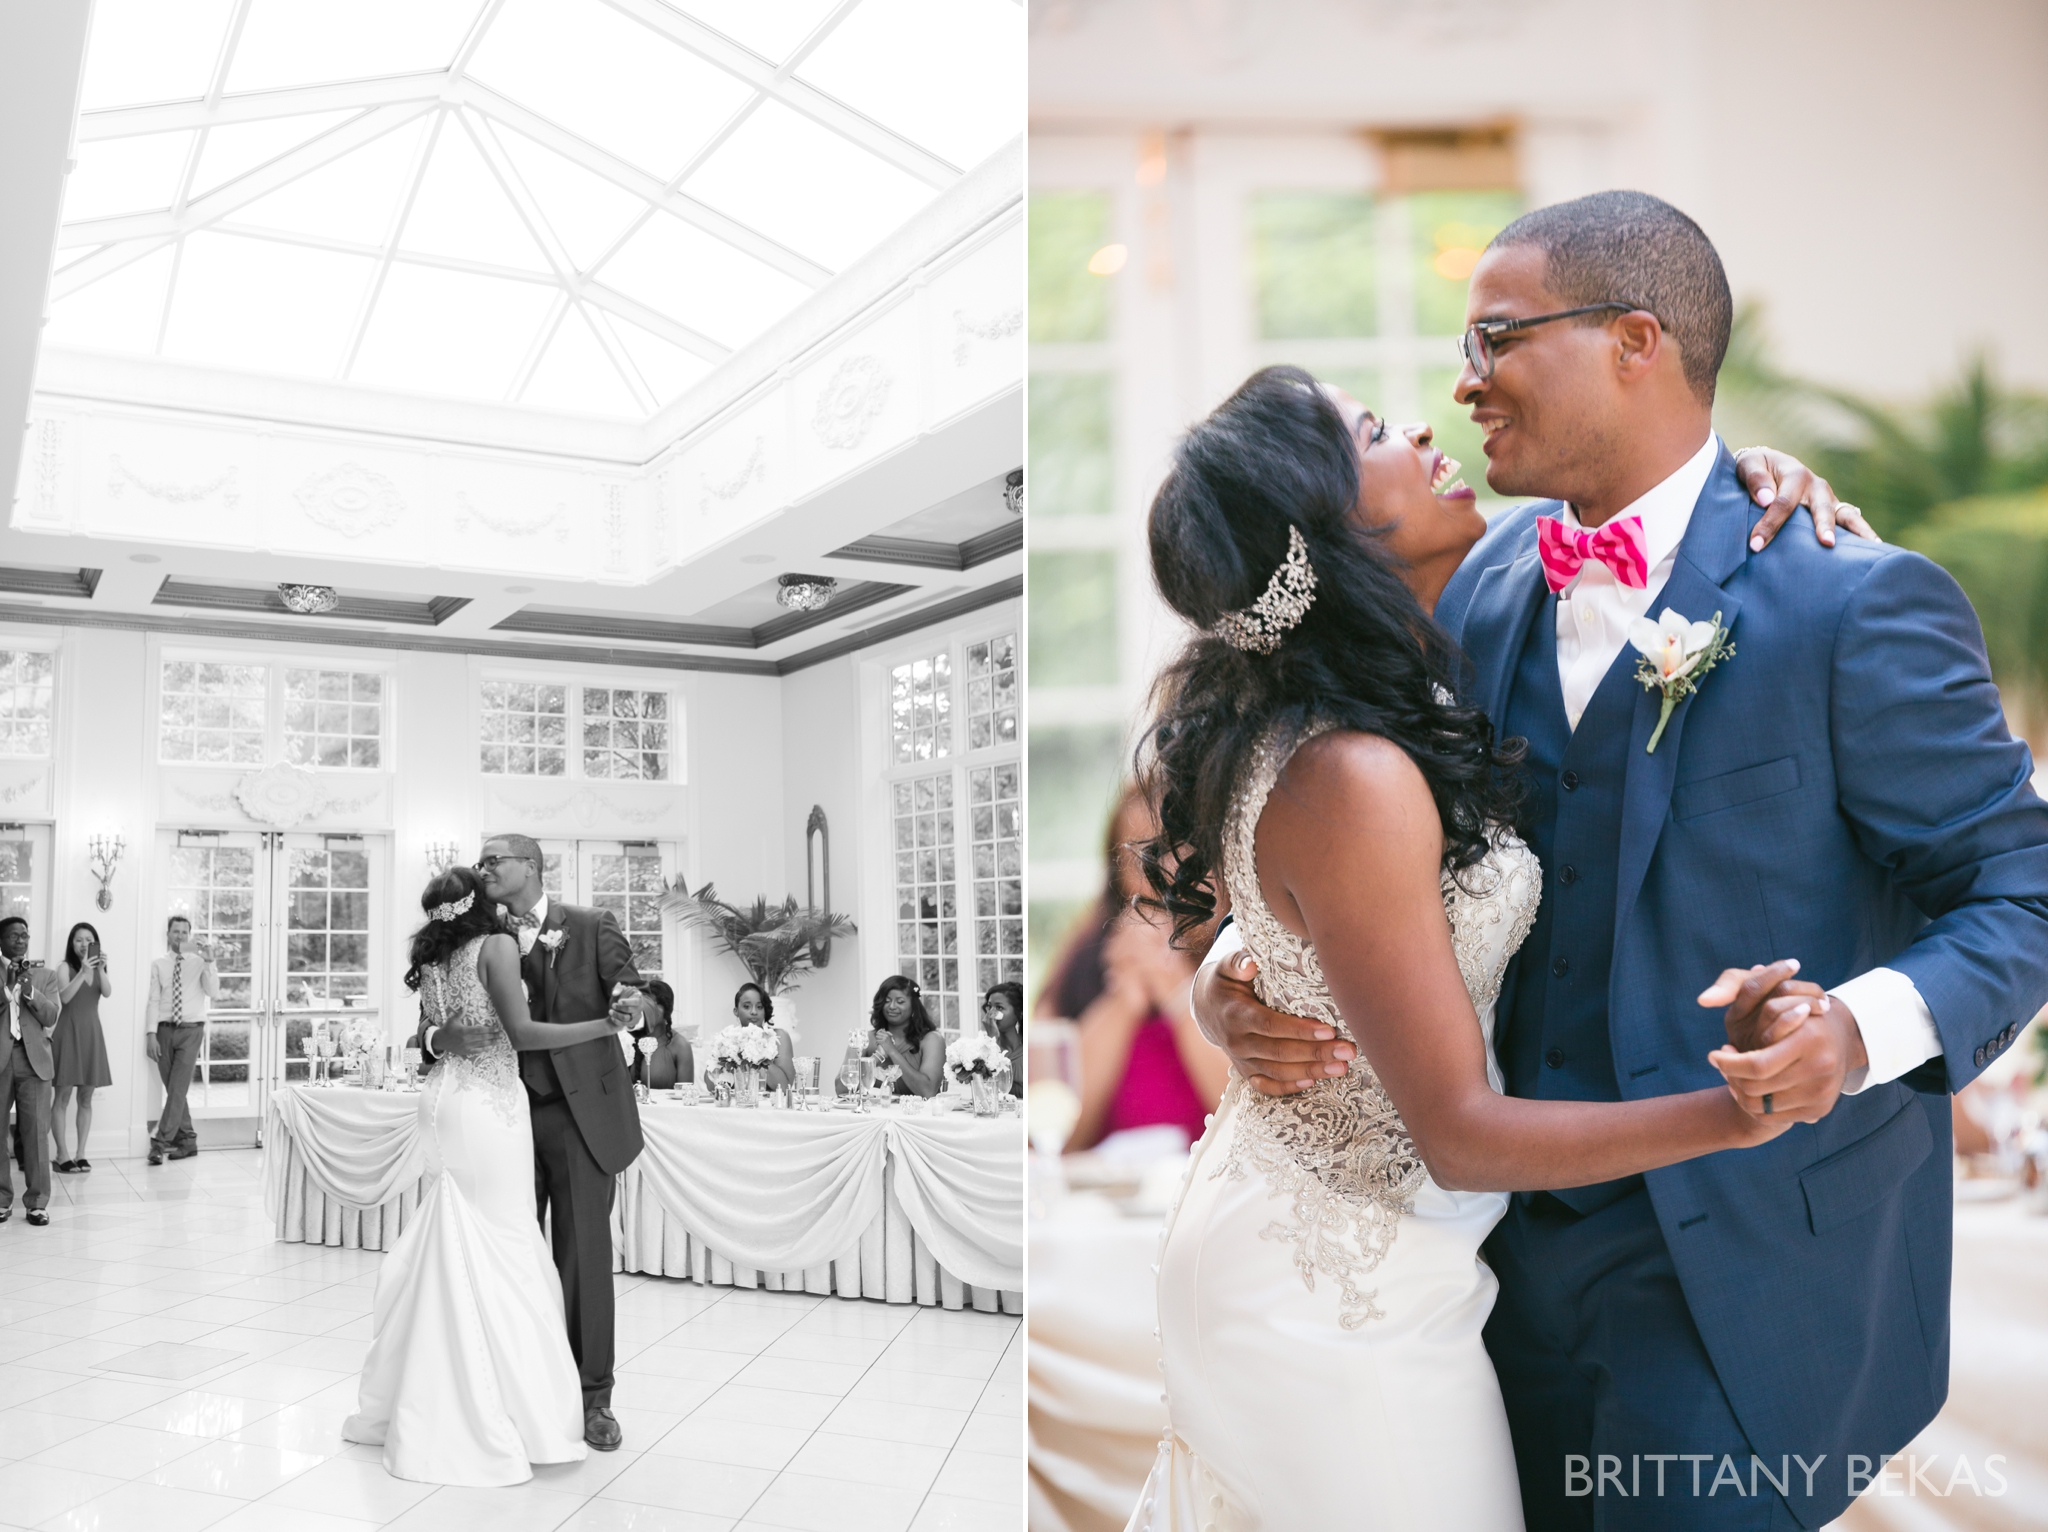 Patrick Haley Mansion Wedding - Brittany Bekas Photography_0044